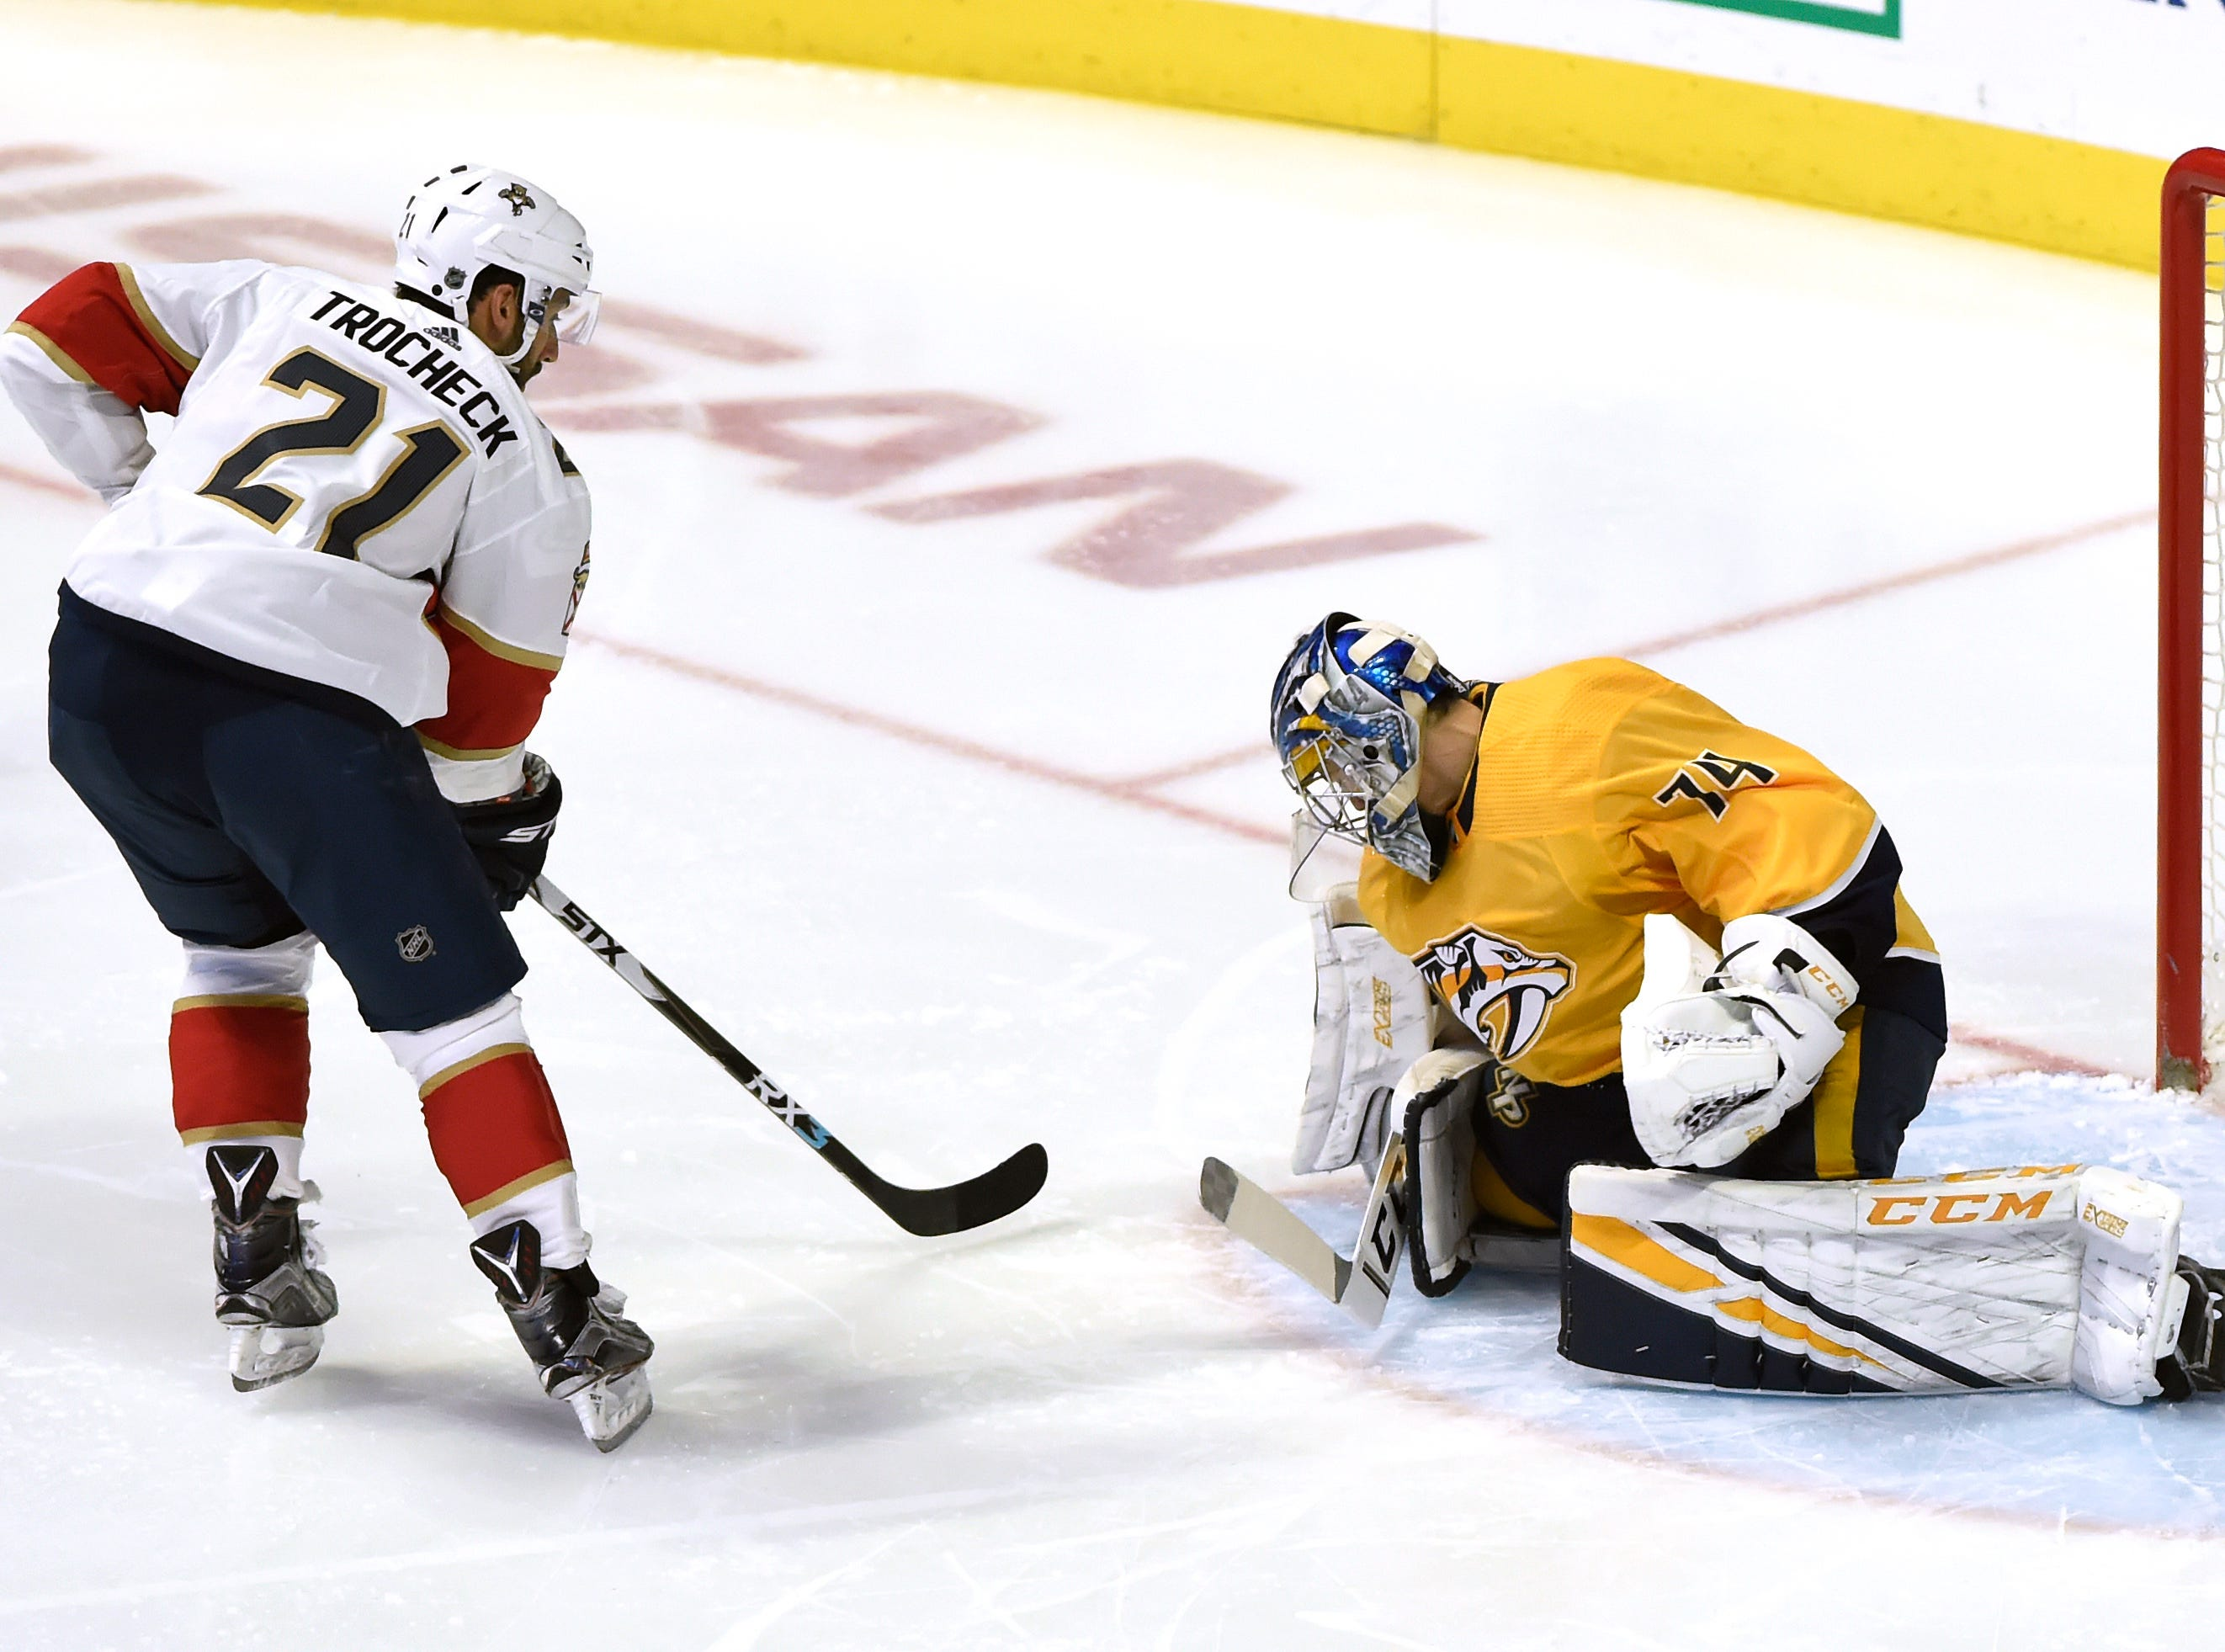 Florida Panthers center Vincent Trocheck (21) scores a goal against Nashville Predators goaltender Juuse Saros (74) during the second period of an NHL hockey game Saturday, Jan. 19, 2019, in Nashville, Tenn.